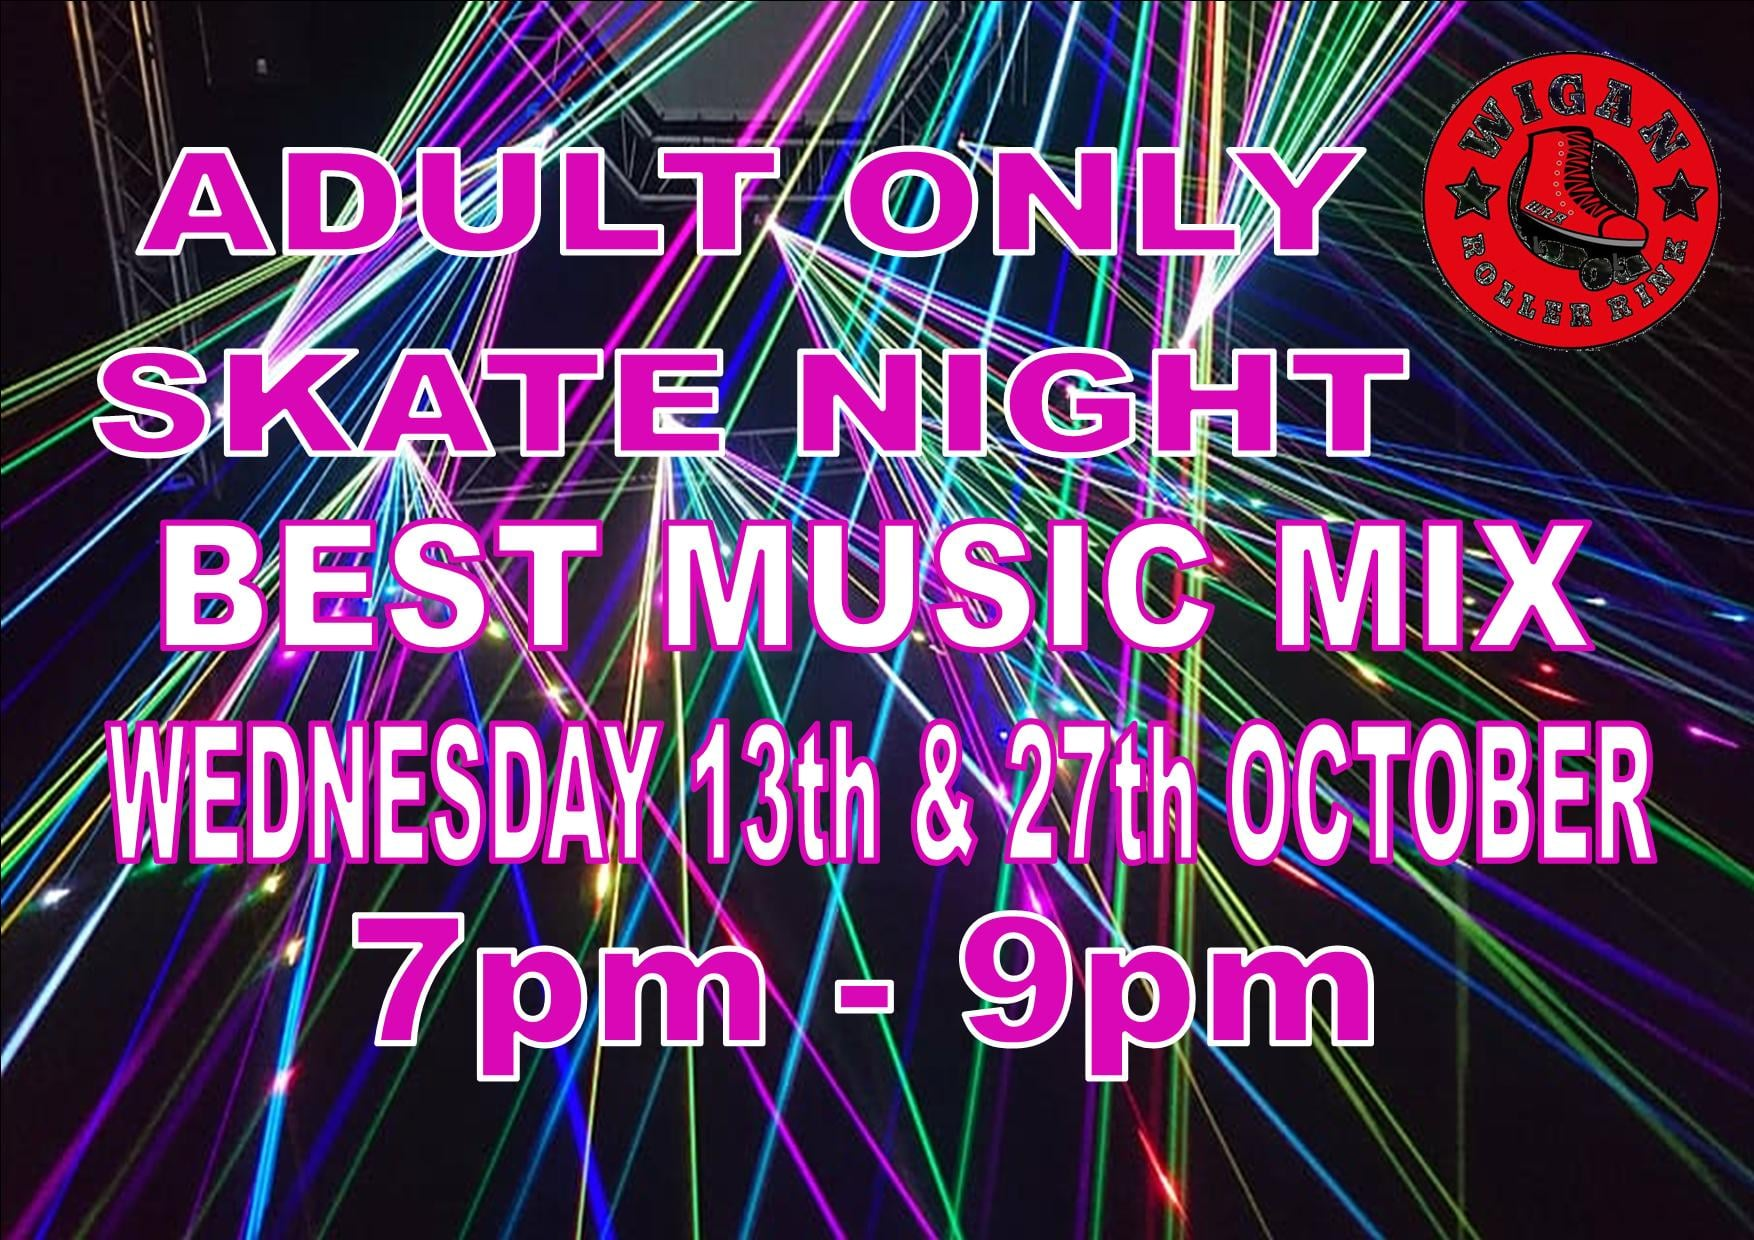 OVER 18'S ONLY SESSIONS 7pm - 9pm